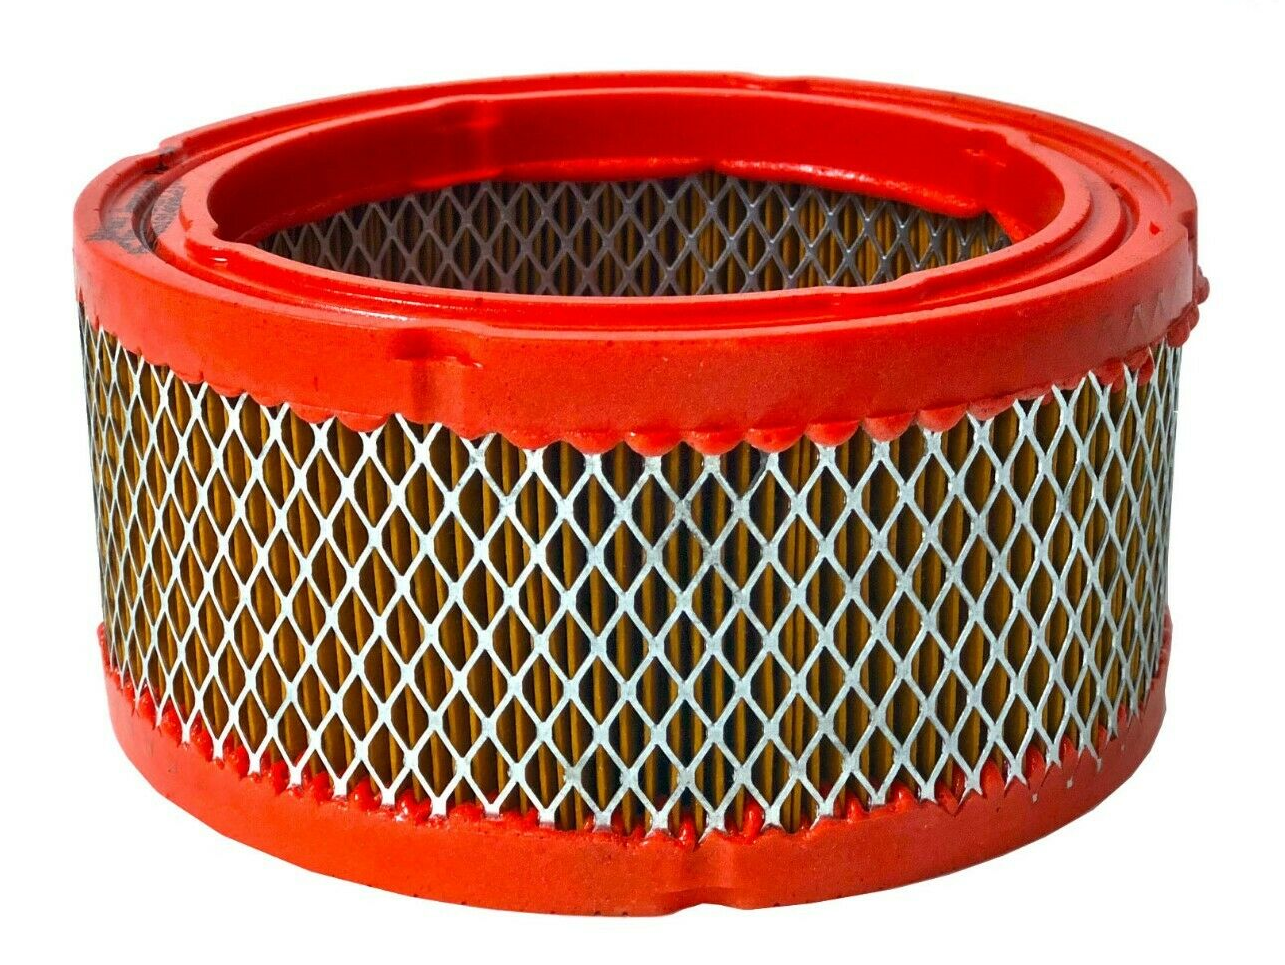 REPLACEMENT AIR FILTER FOR GENERAC 0C8127 MADE BY UNVIVERSAL